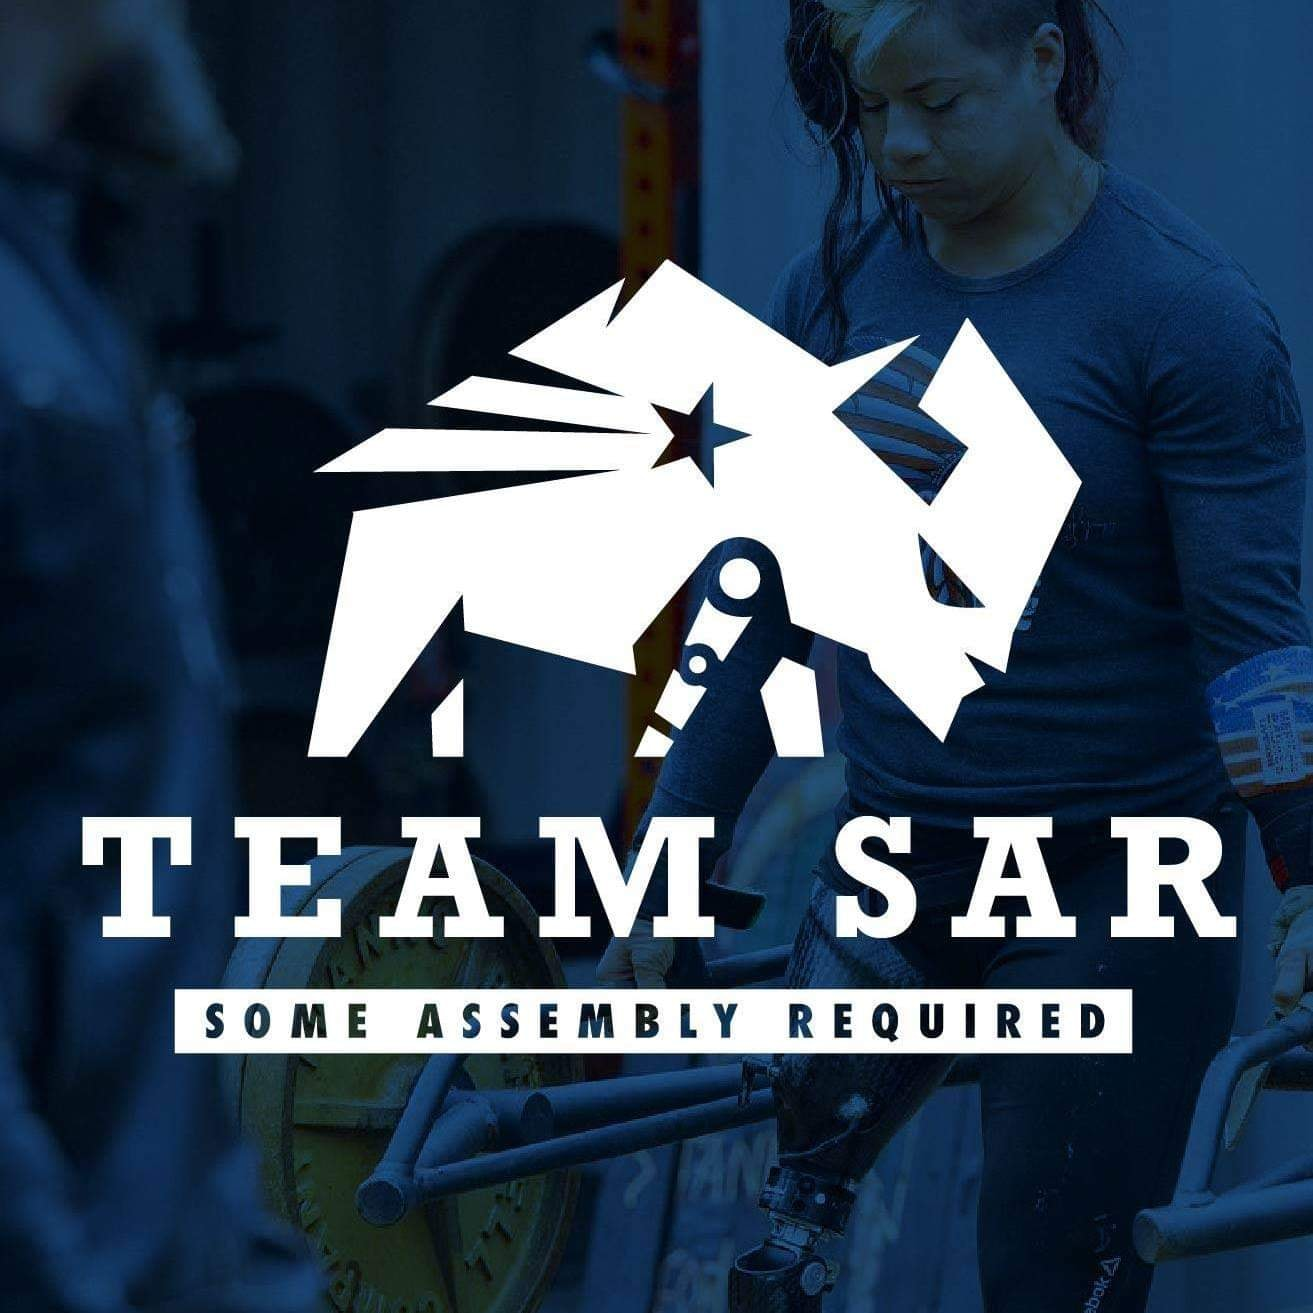 We use and display the relentless spirit of the American adaptive athlete to promote and instill, in  ALL  Americans, a fundamental belief that athletics, camaraderie and competition organically grow a sense of confidence, independence and purpose.